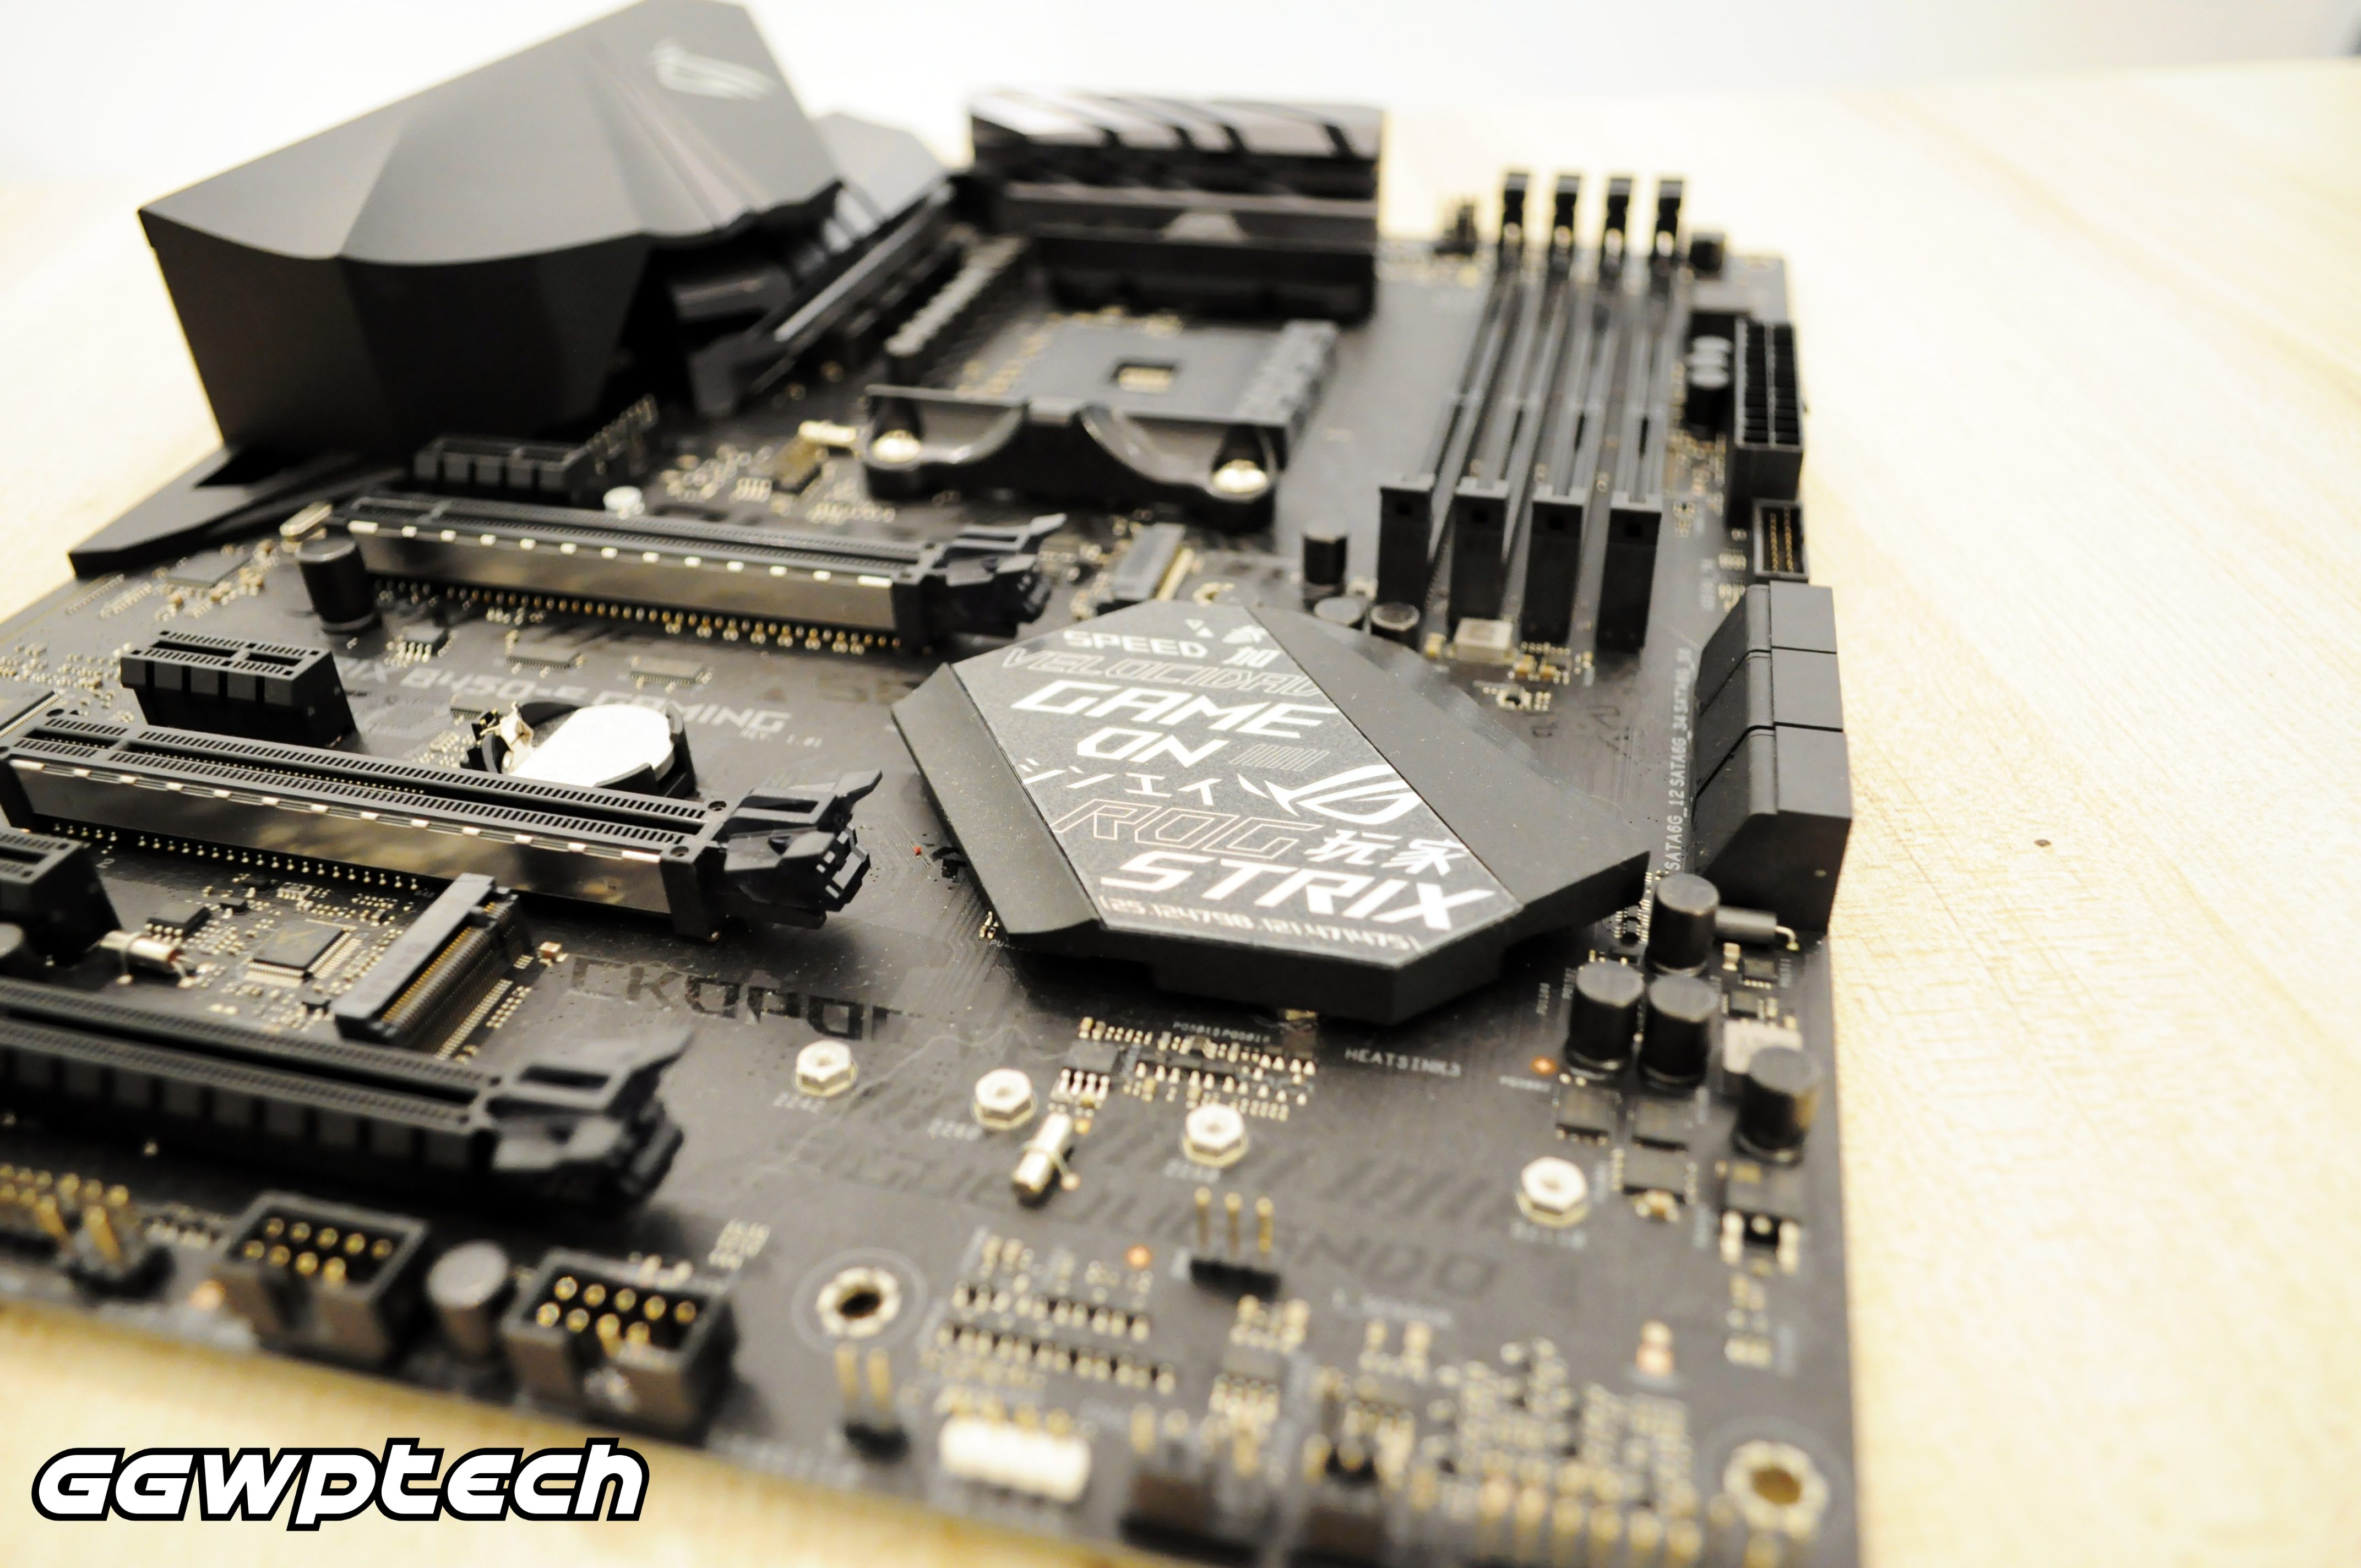 Taking a look at the Asus ROG Strix B450-F Gaming motherboard